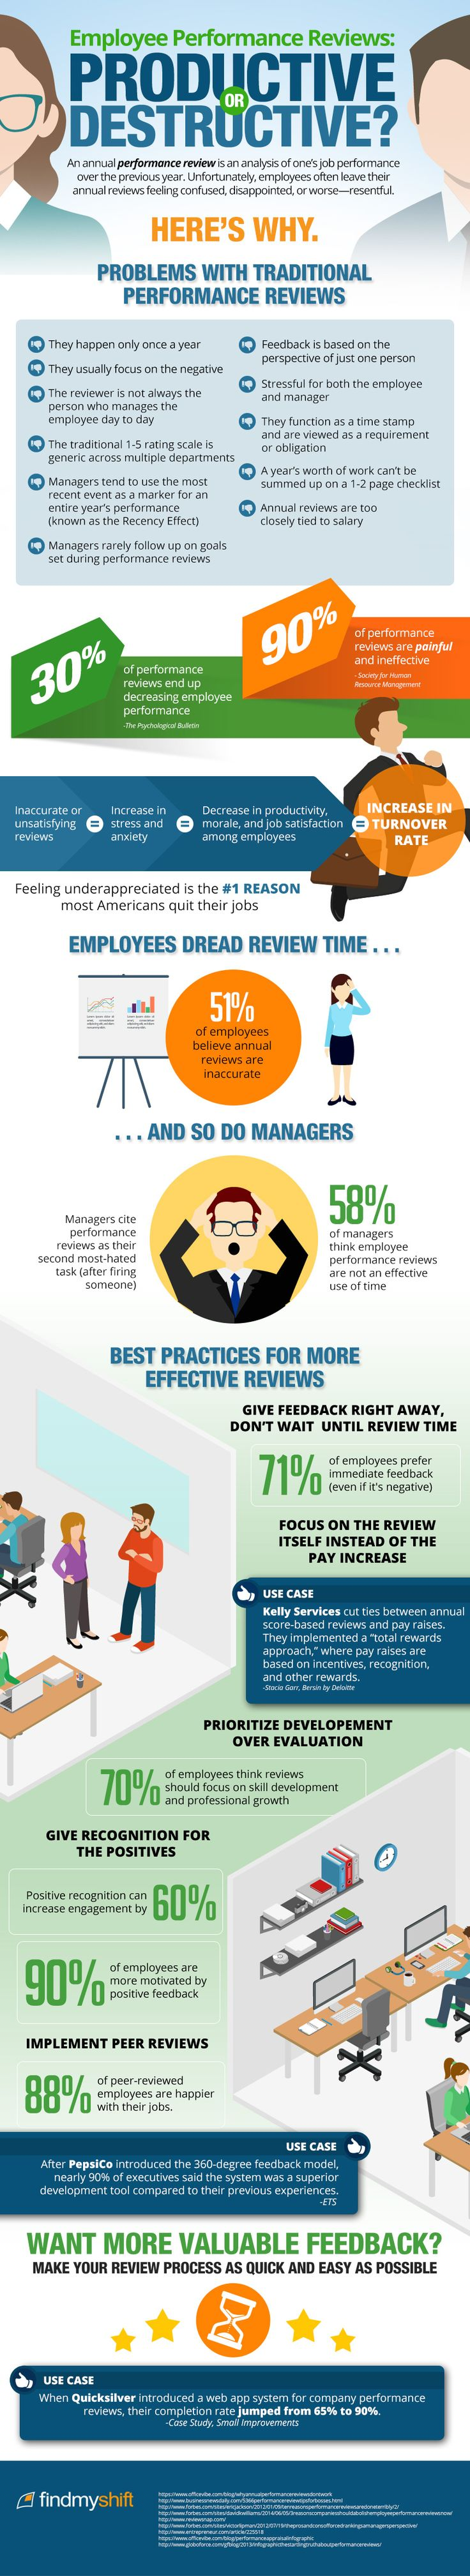 Employee performance reviews productive or destructive infographic 2618